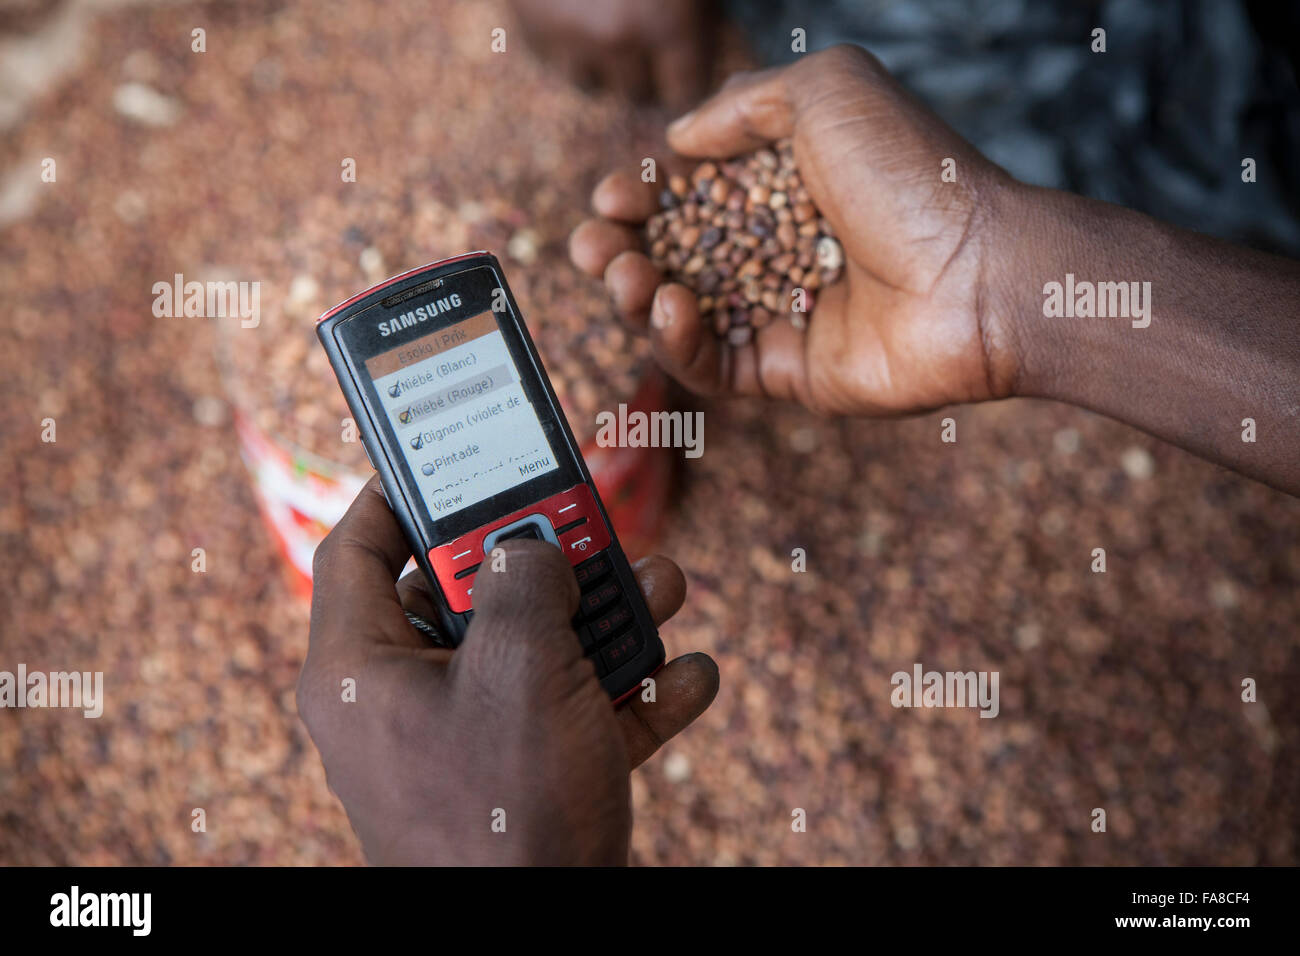 A commodities buyer uses mobile phone technology to compare prices at various markets within Banfora Department, - Stock Image